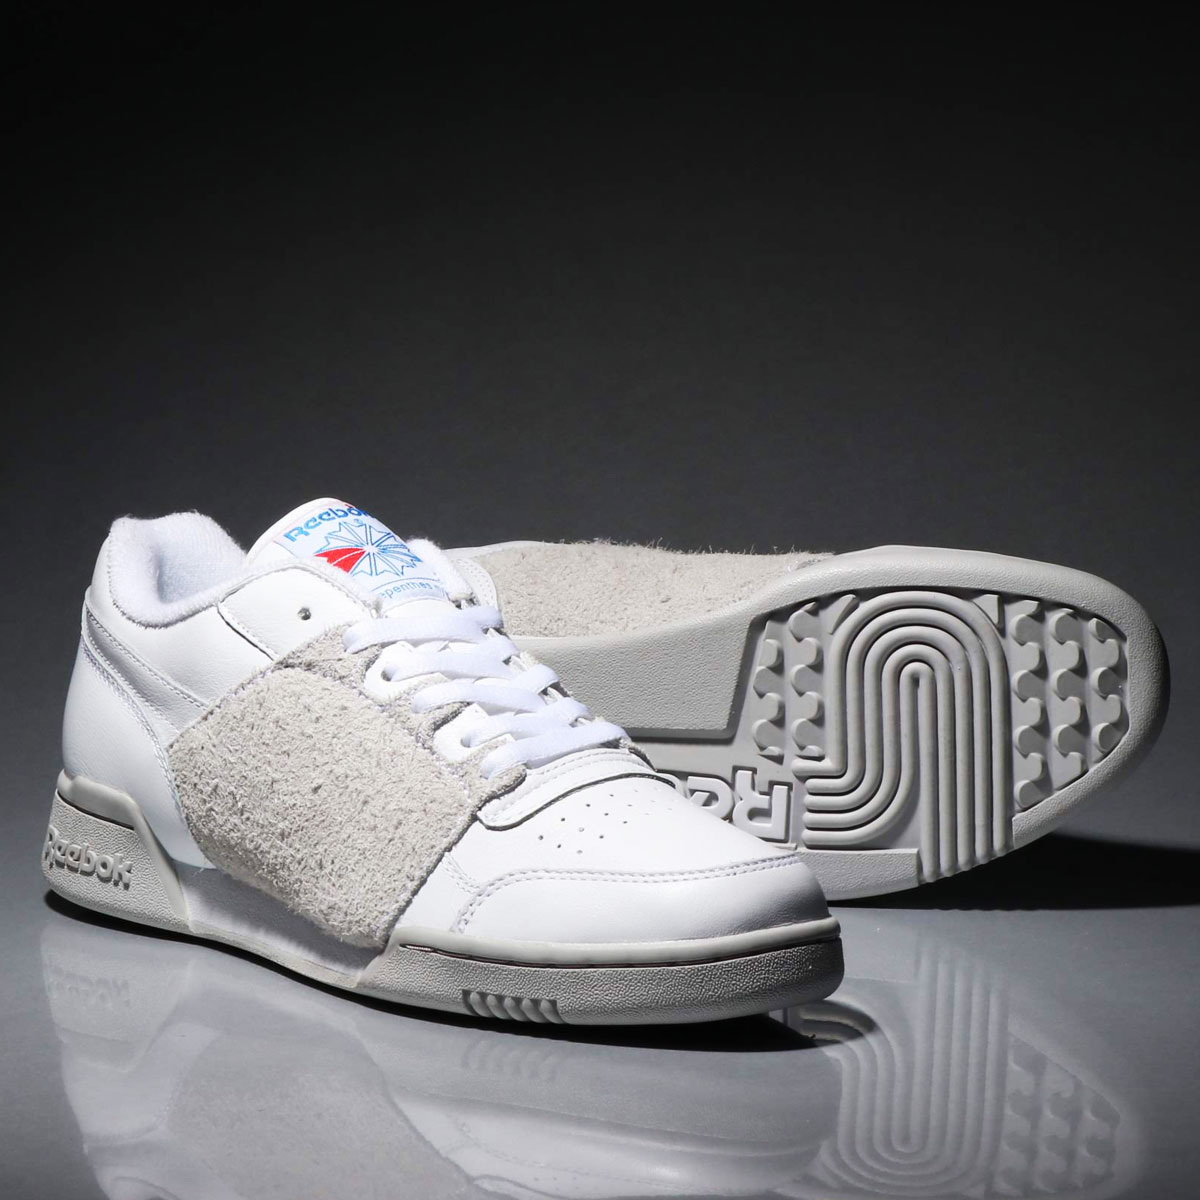 retail prices volume large top-rated professional Reebok WORKOUT PLUS NEPENTHES (Reebok practice game plus nepenthe)  WHT/STEEL/BLUE 19SS-S